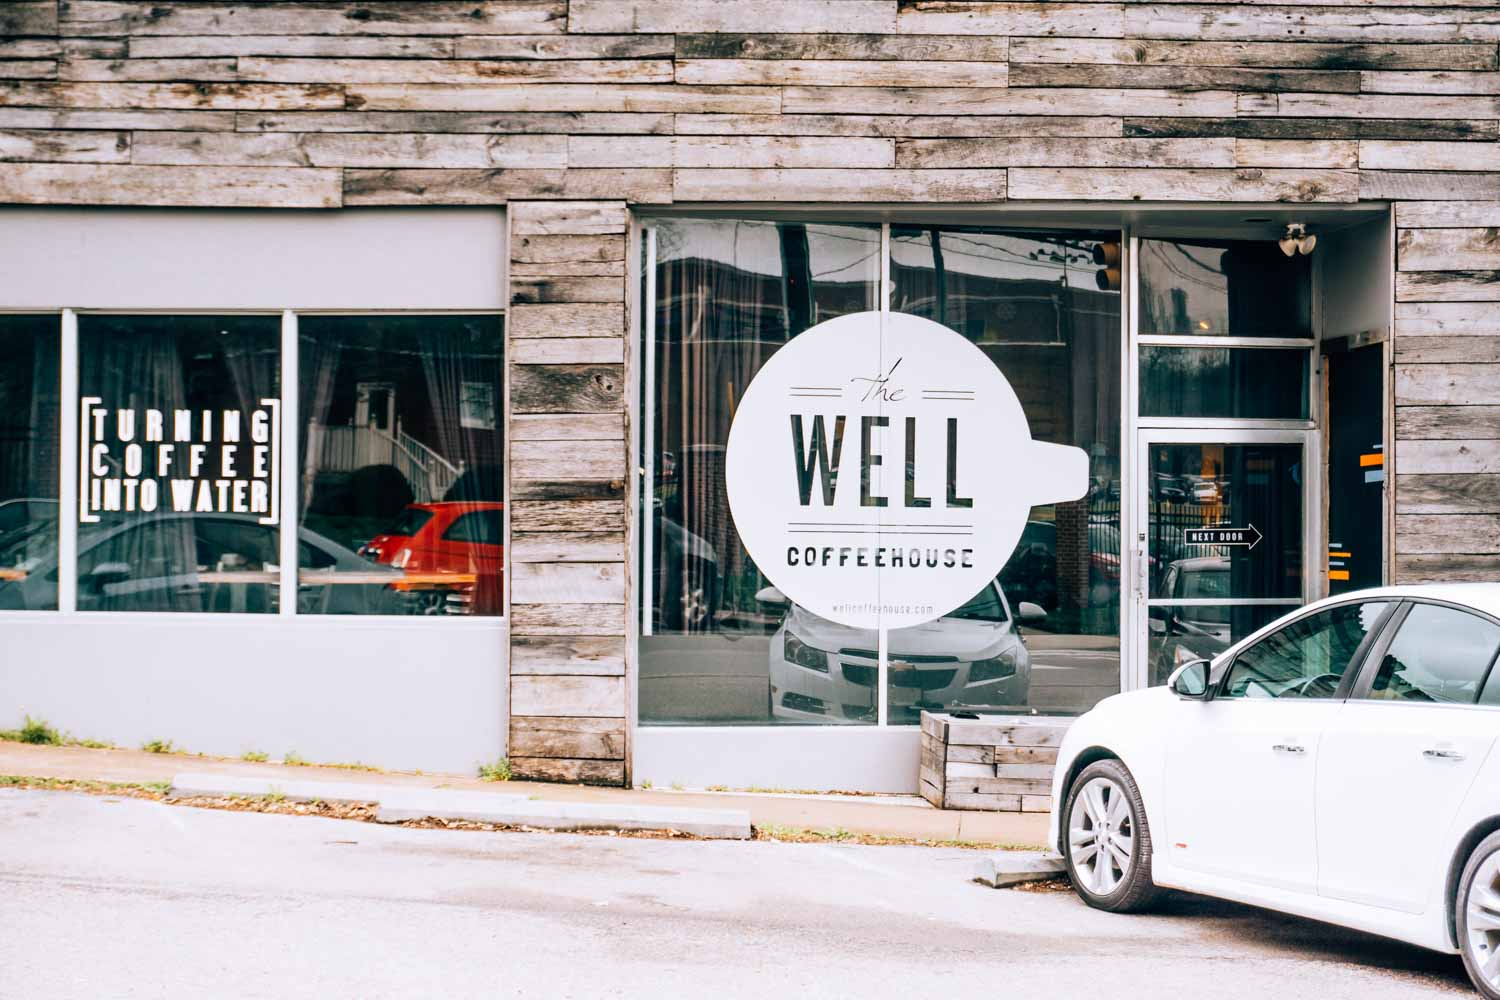 exterior of Well Coffeehouse with circular window graphic that features the company name. To the left is another window graphic that says Turning Coffee into Water